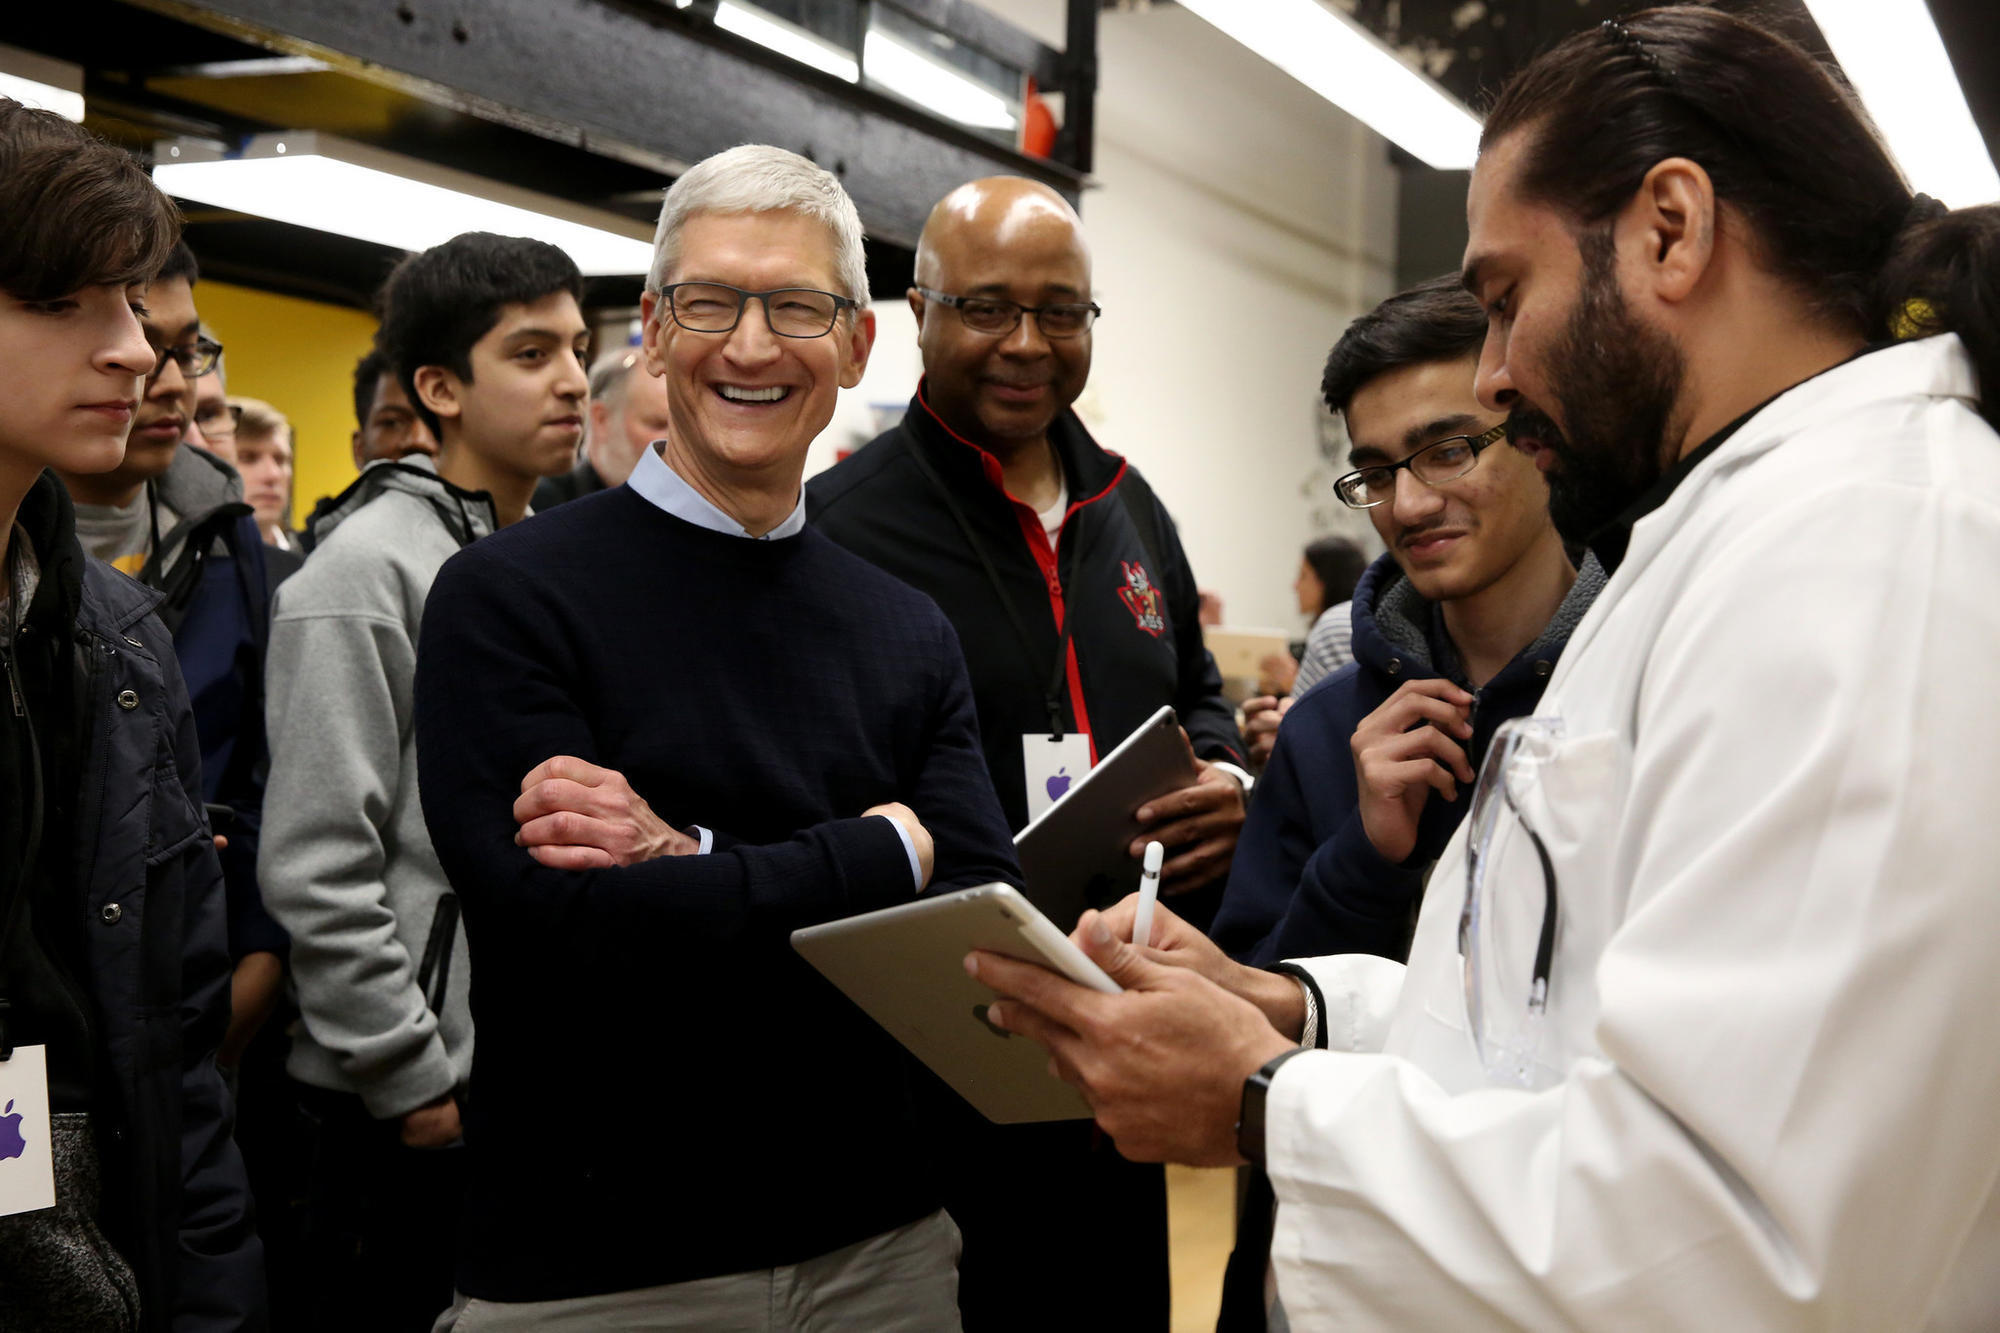 Apple draws tech world's eyes to Chicago's Lane Tech with ...